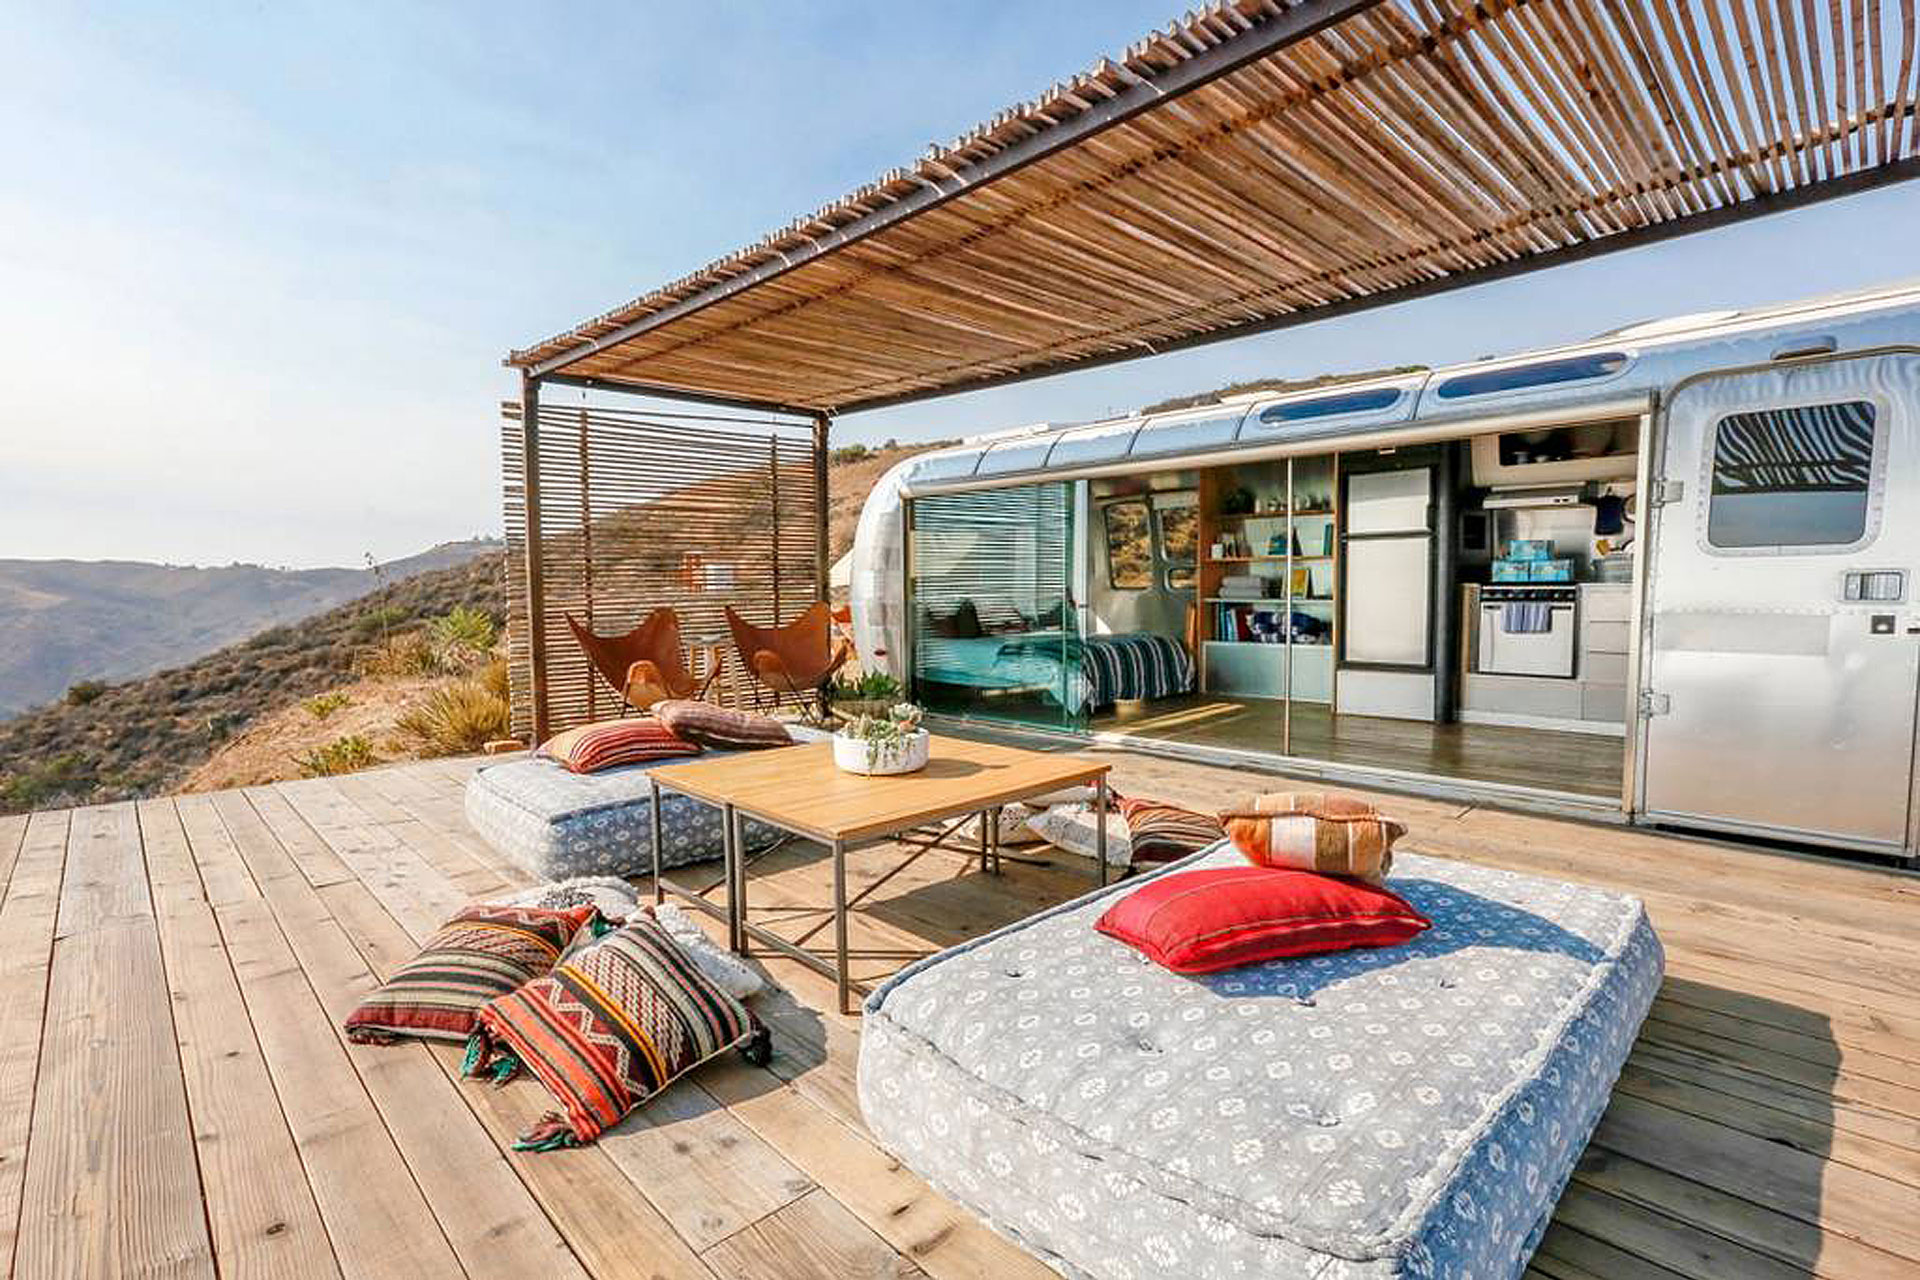 Best Airbnb Airstream and Camper Rentals   Apartment Therapy